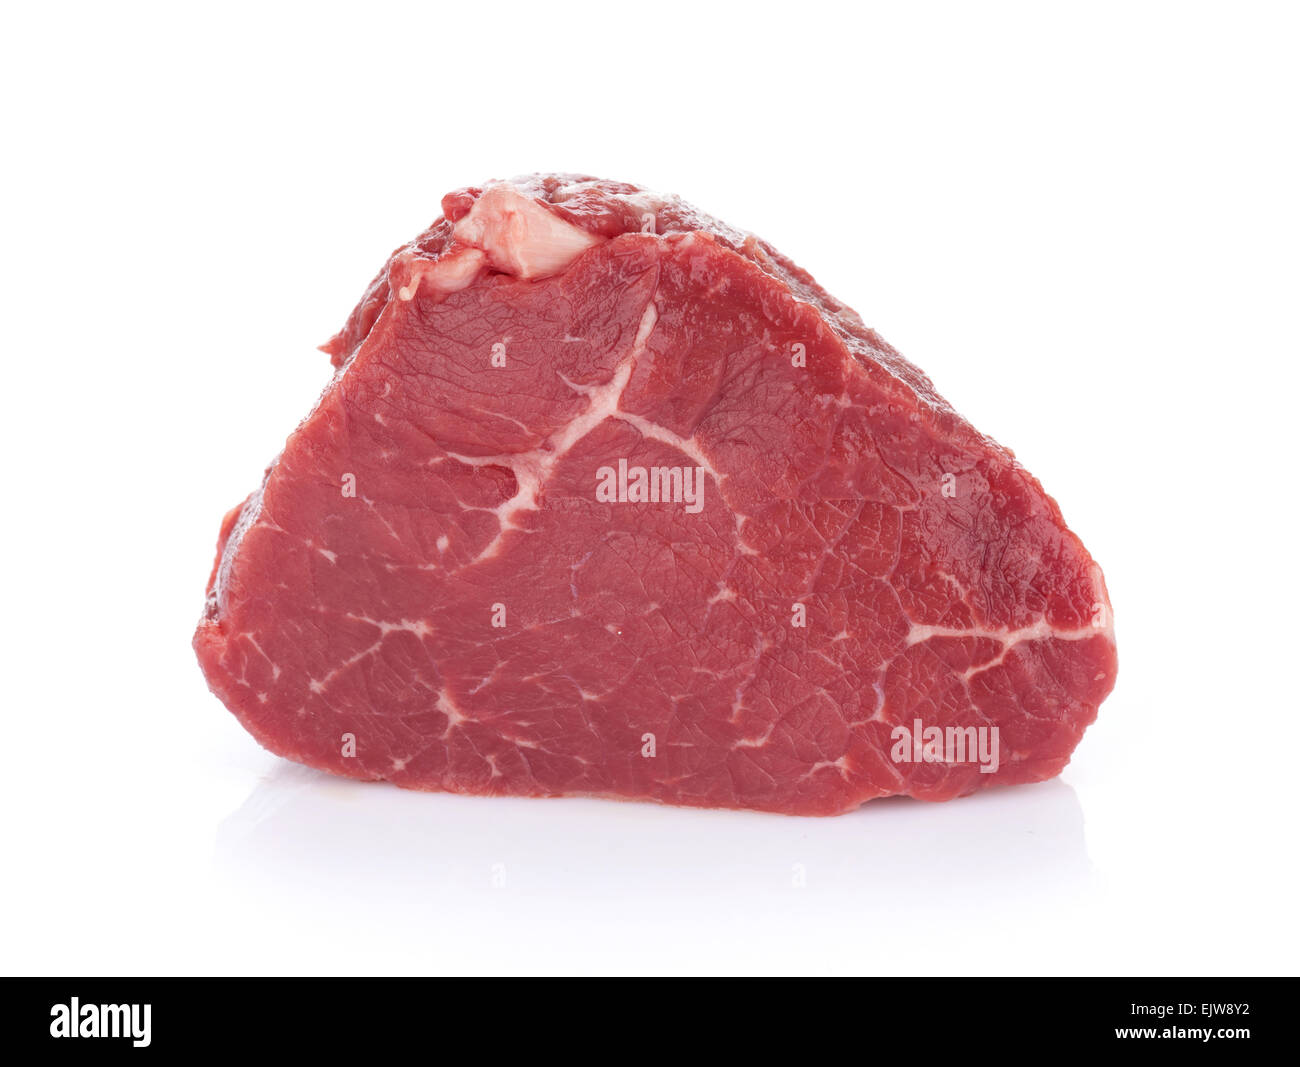 Fillet steak beef meat. Isolated on white background - Stock Image